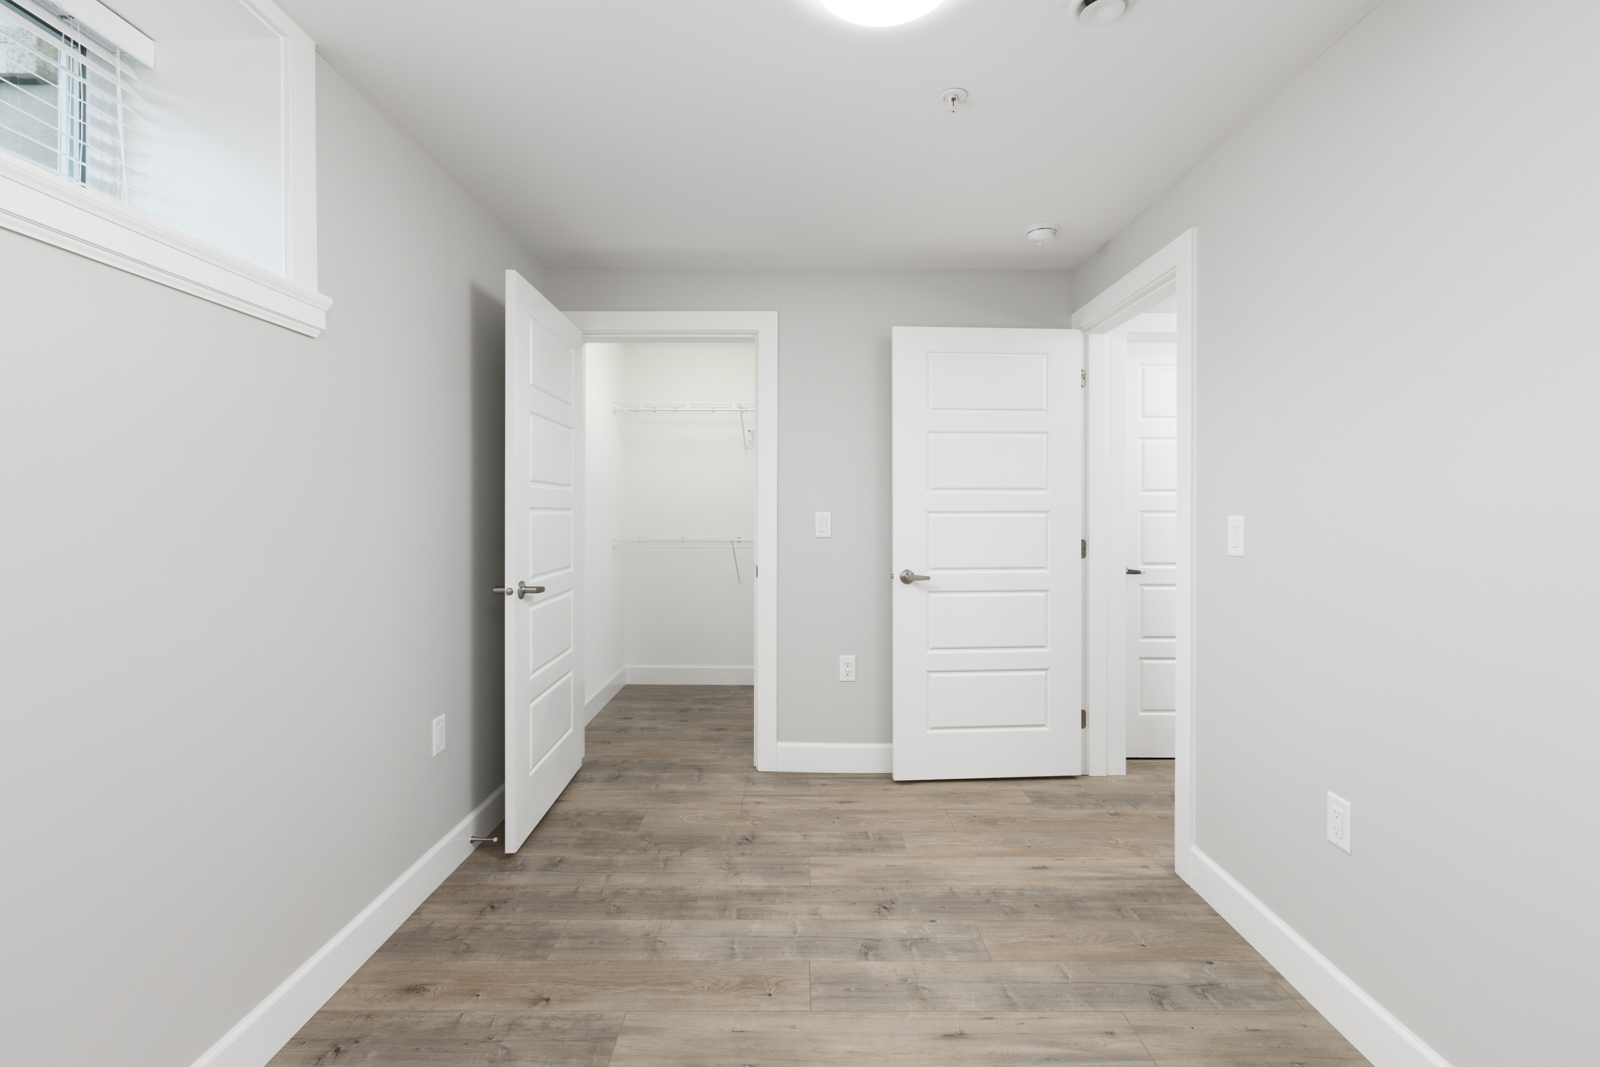 Light grey room with multiple doorways inside Vancouver rental.